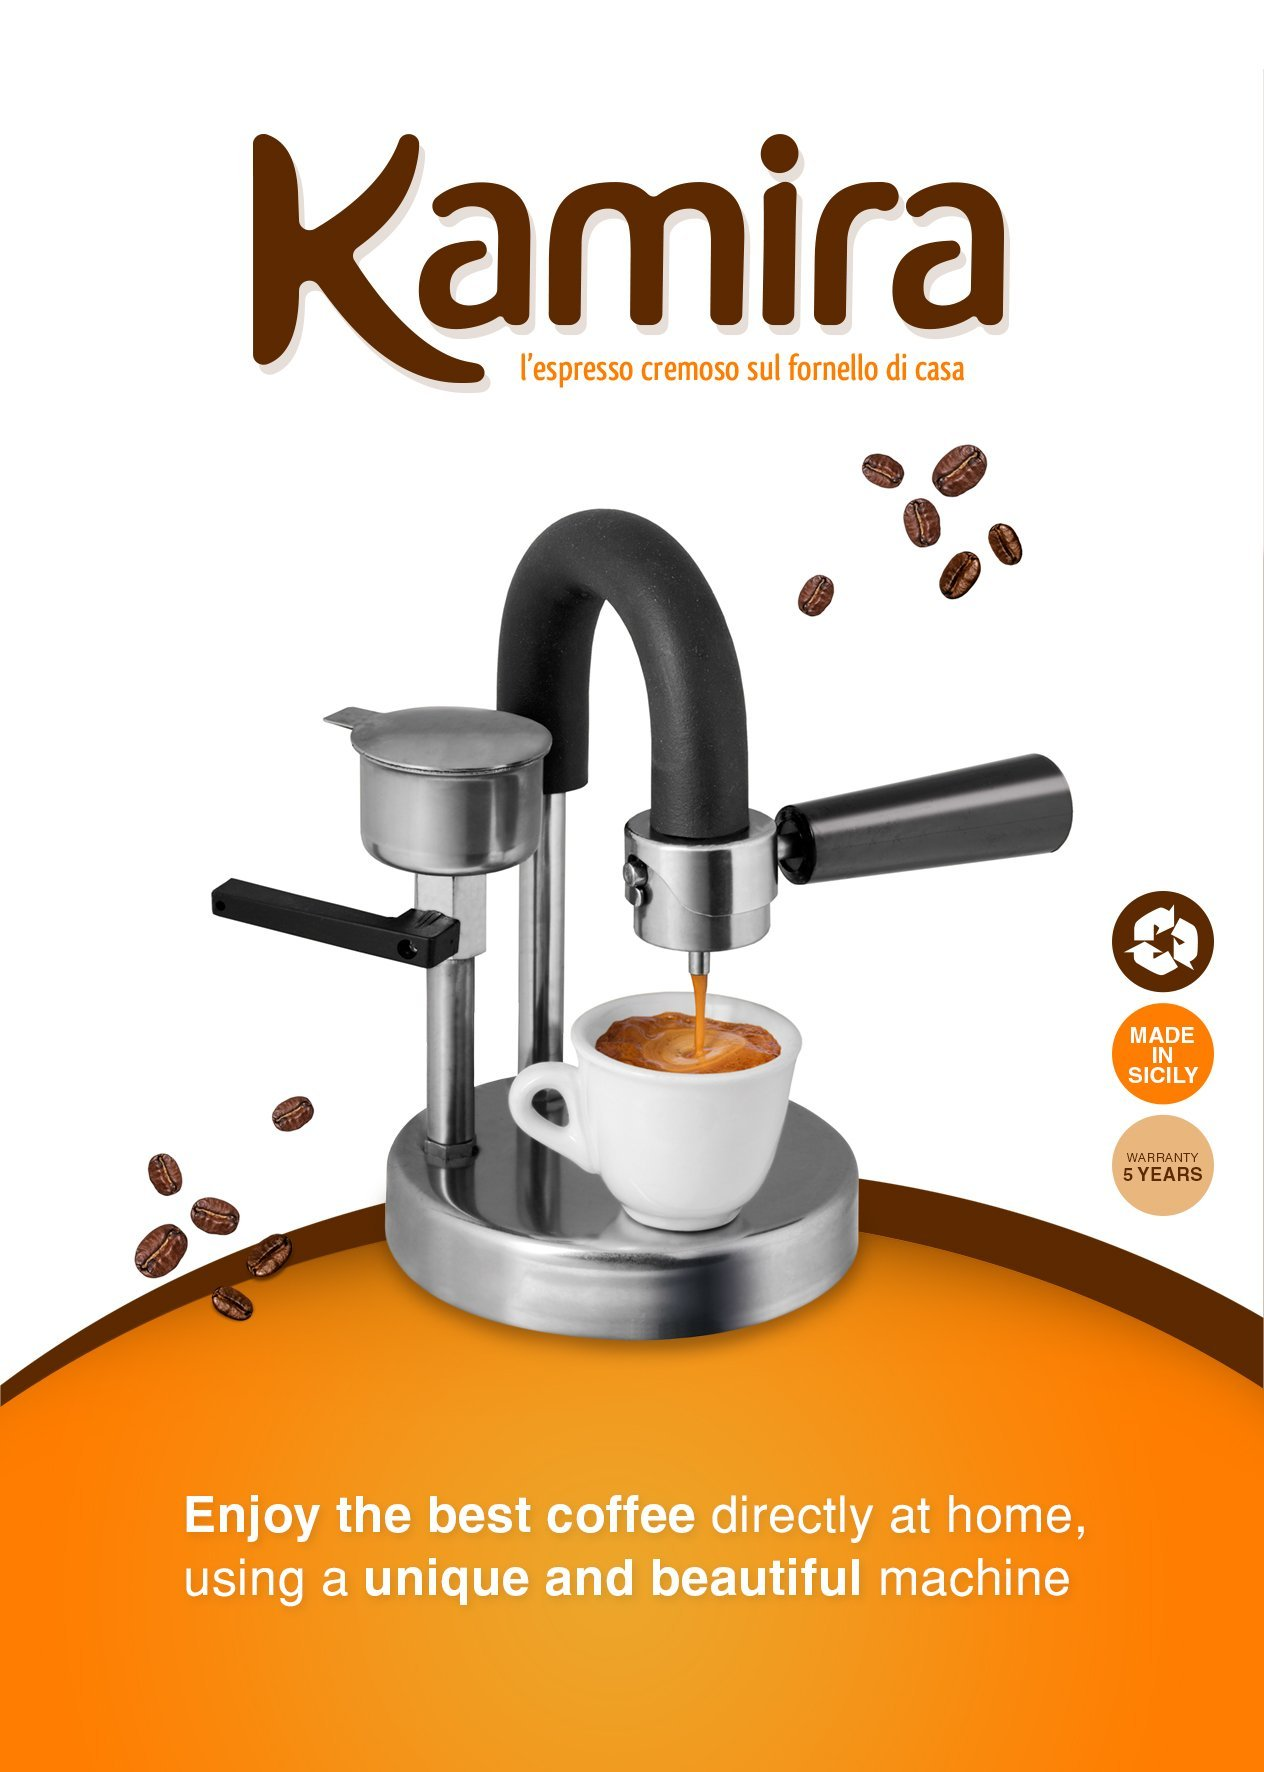 KAMIRA Moka Express 1/2 Cups Stovetop Espresso Maker. The perfect gift! Made in  Italy by KAMIRA